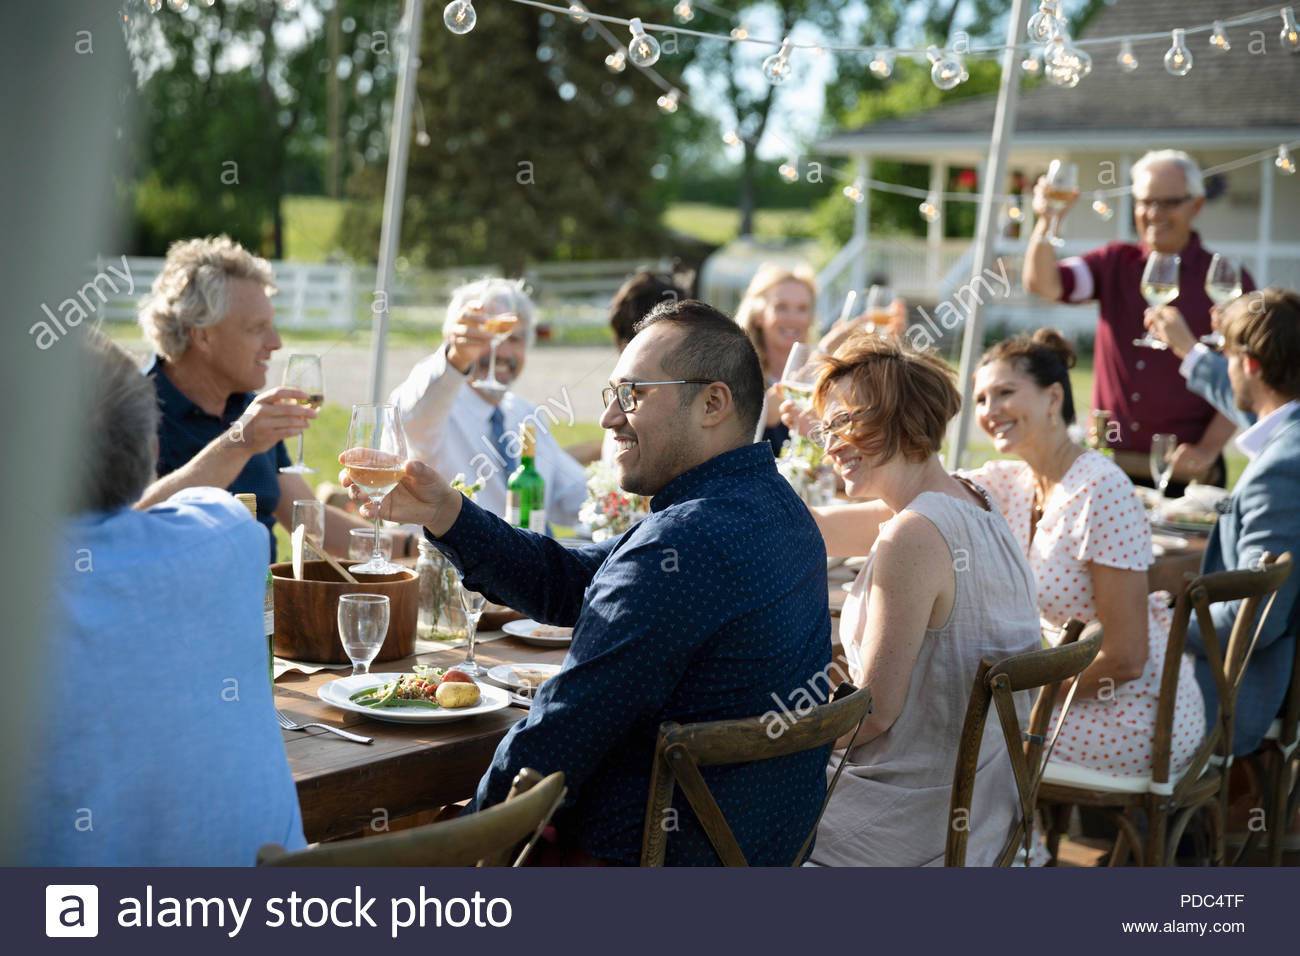 Friends enjoying celebratory toast at garden party table - Stock Image